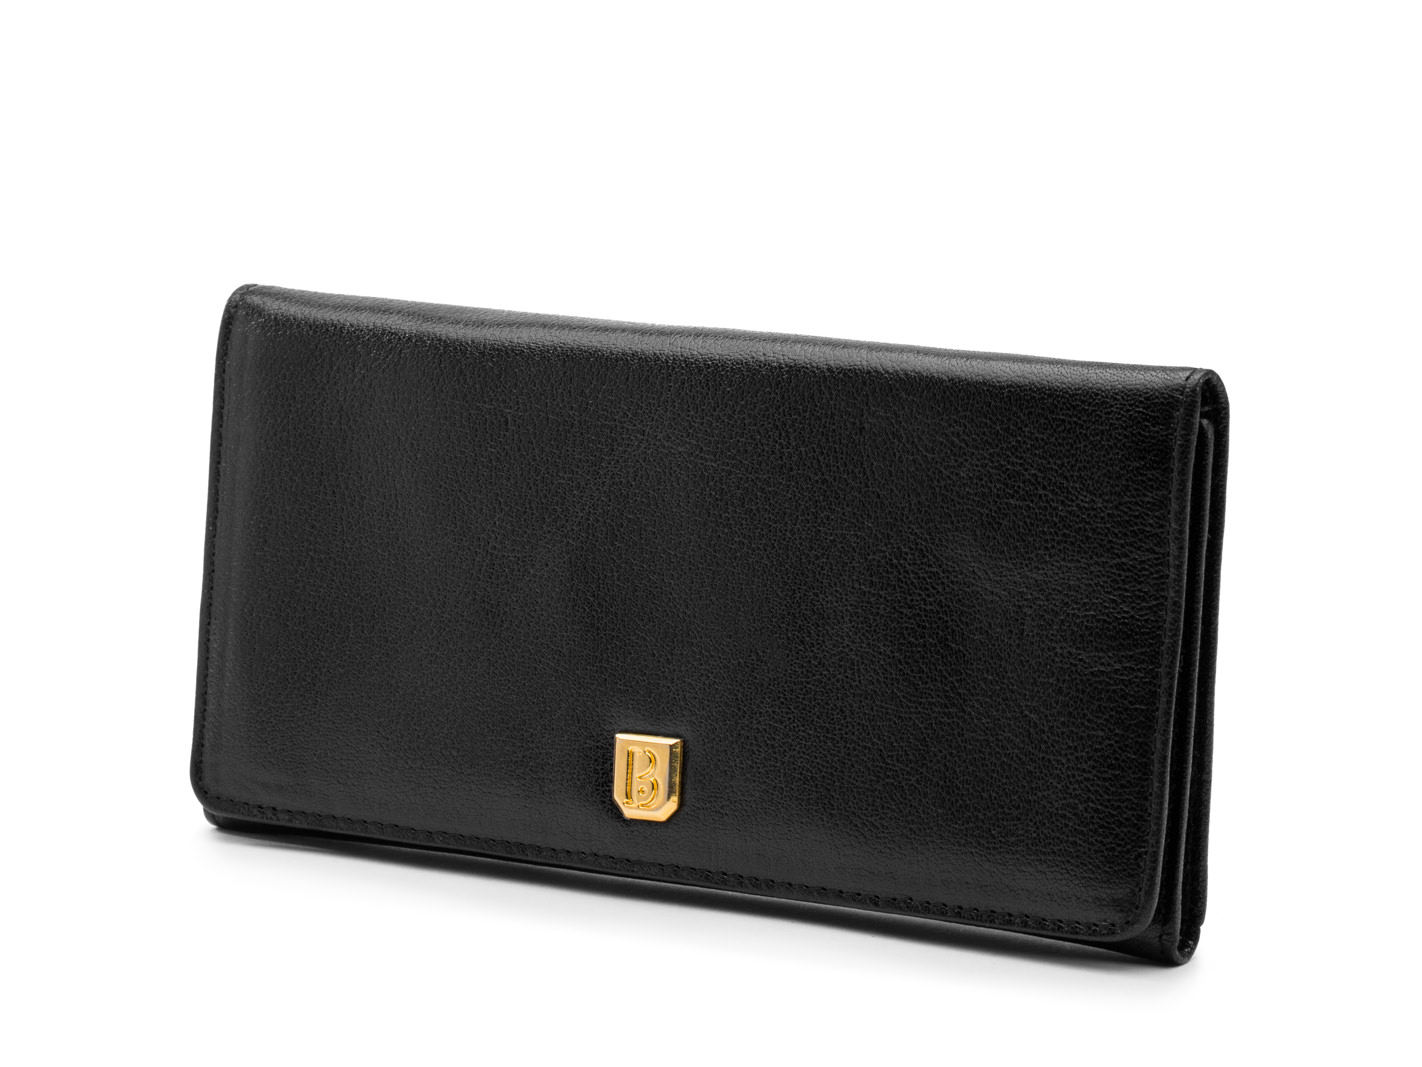 Onyx 8 Pocket Vertical Wallet-70 Onyx - 70 Onyx